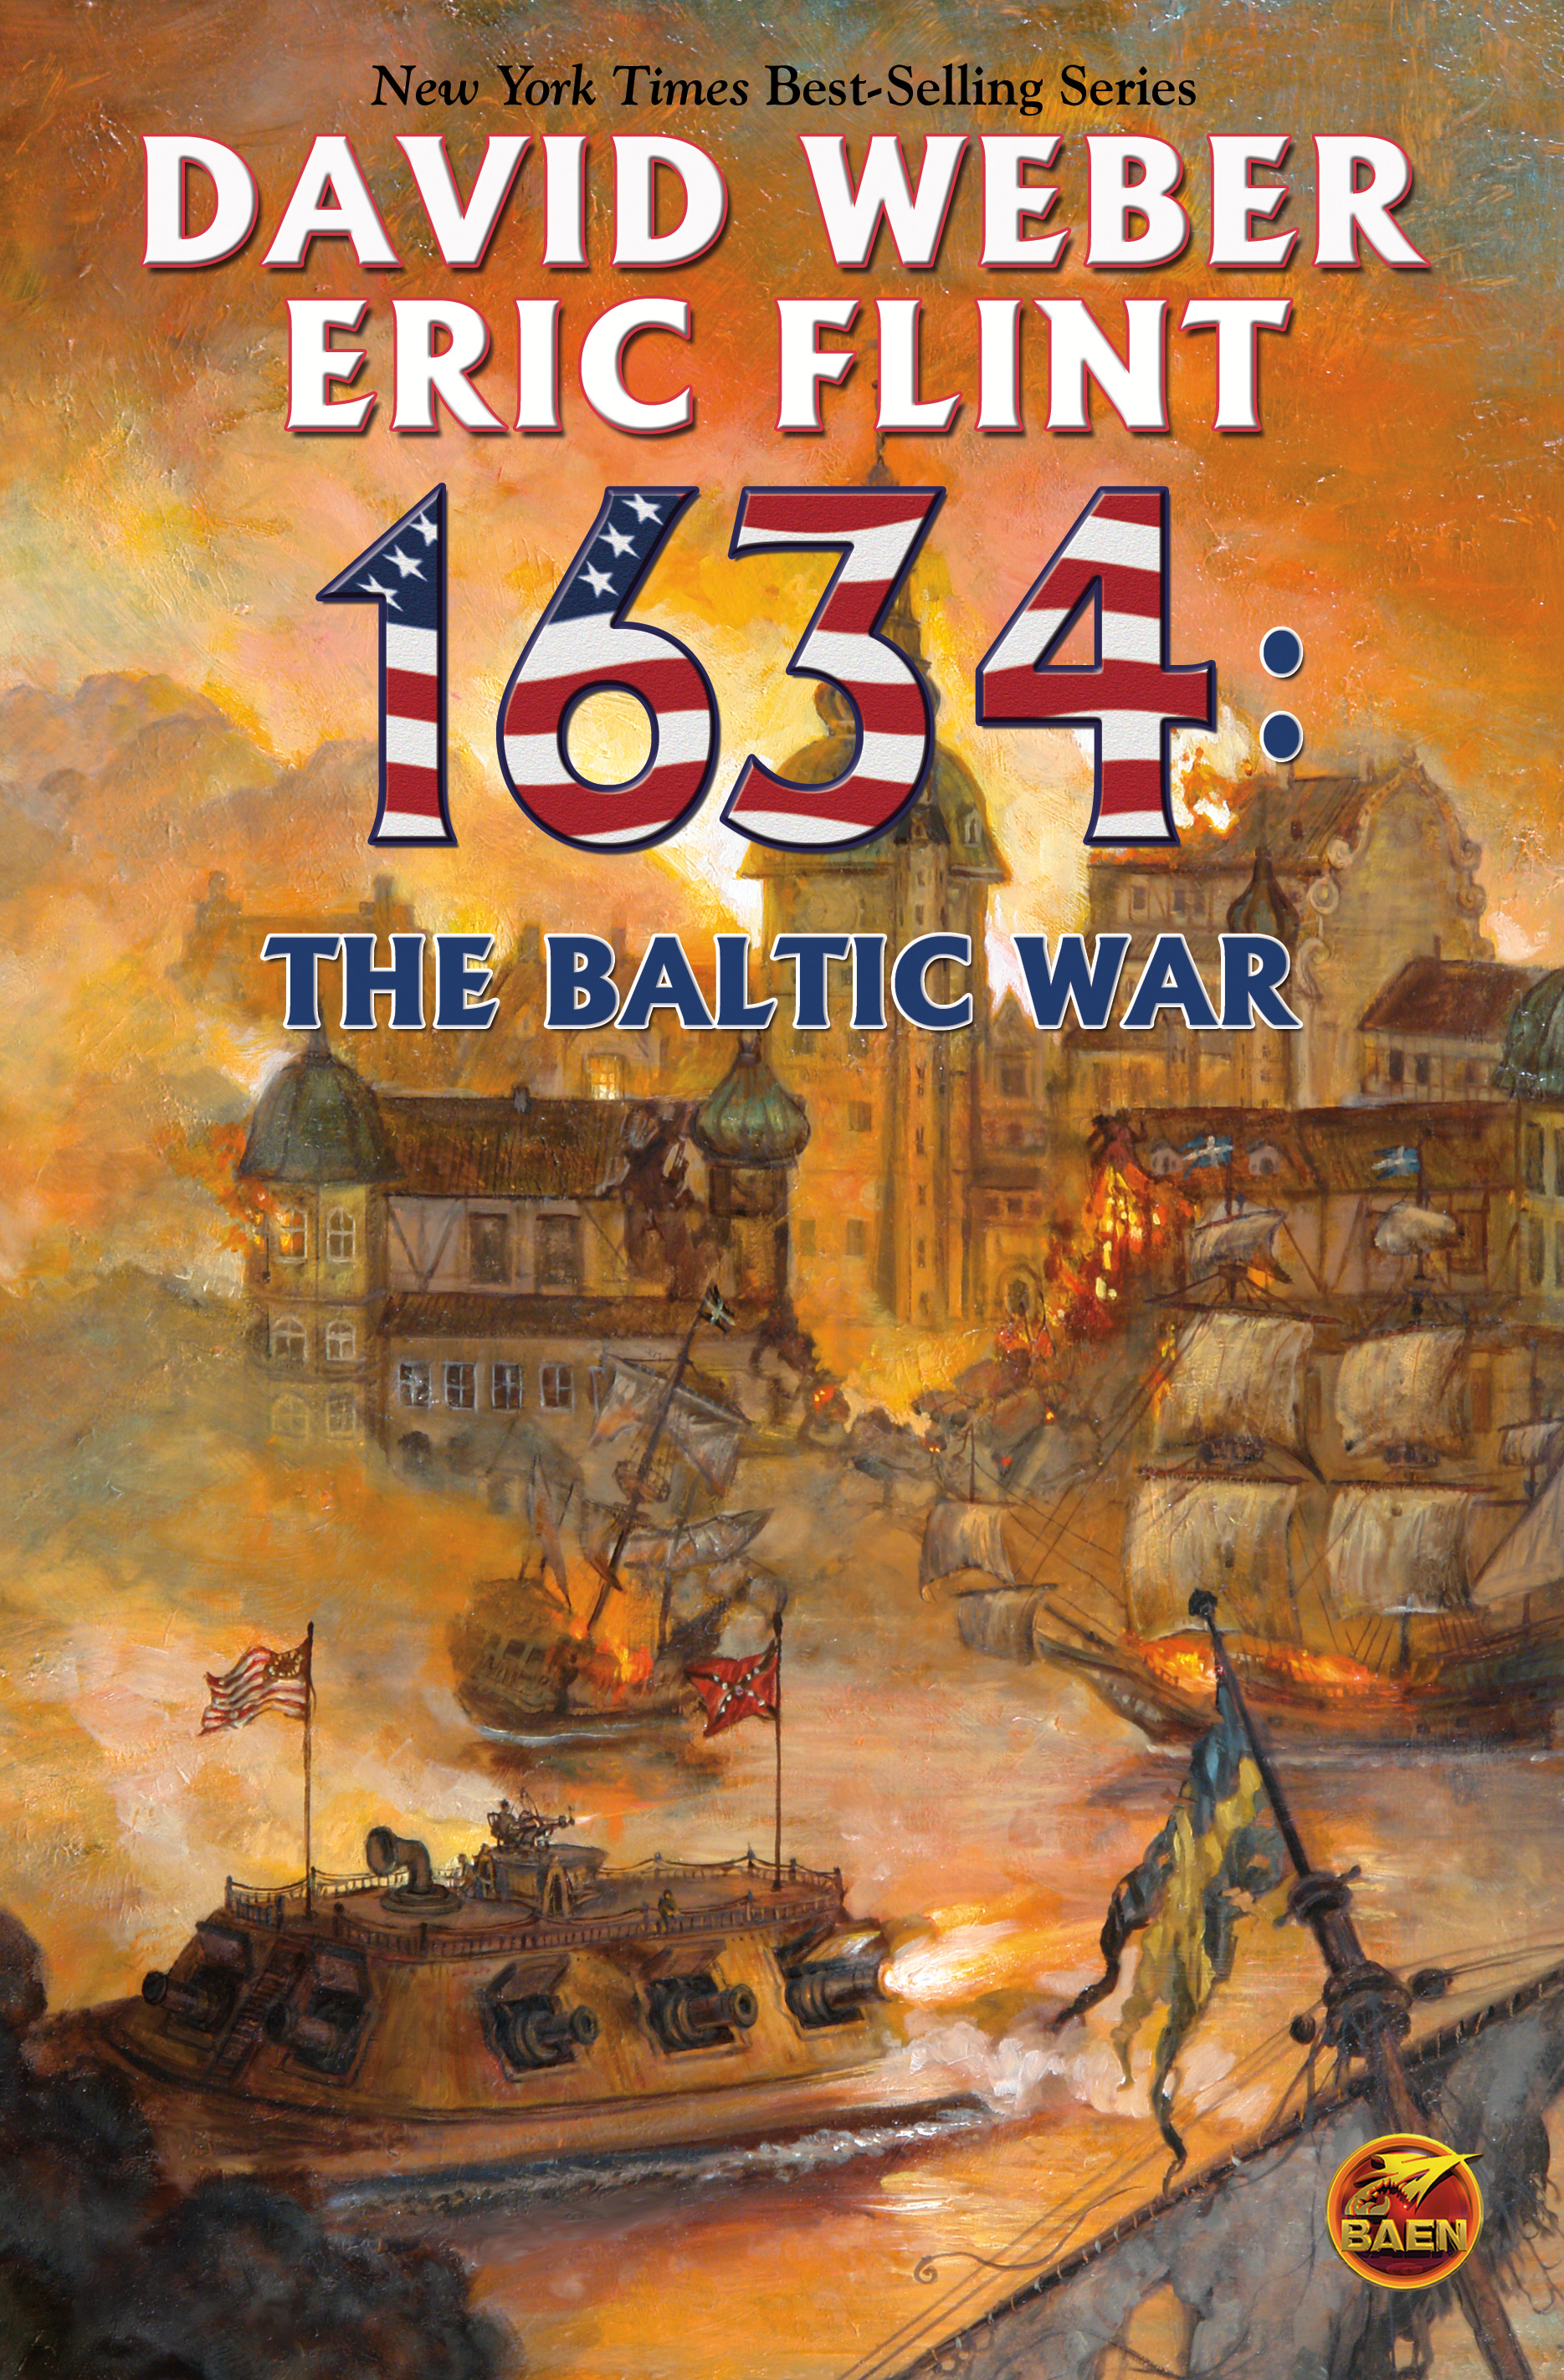 Book Cover Image (jpg): 1634: The Baltic War